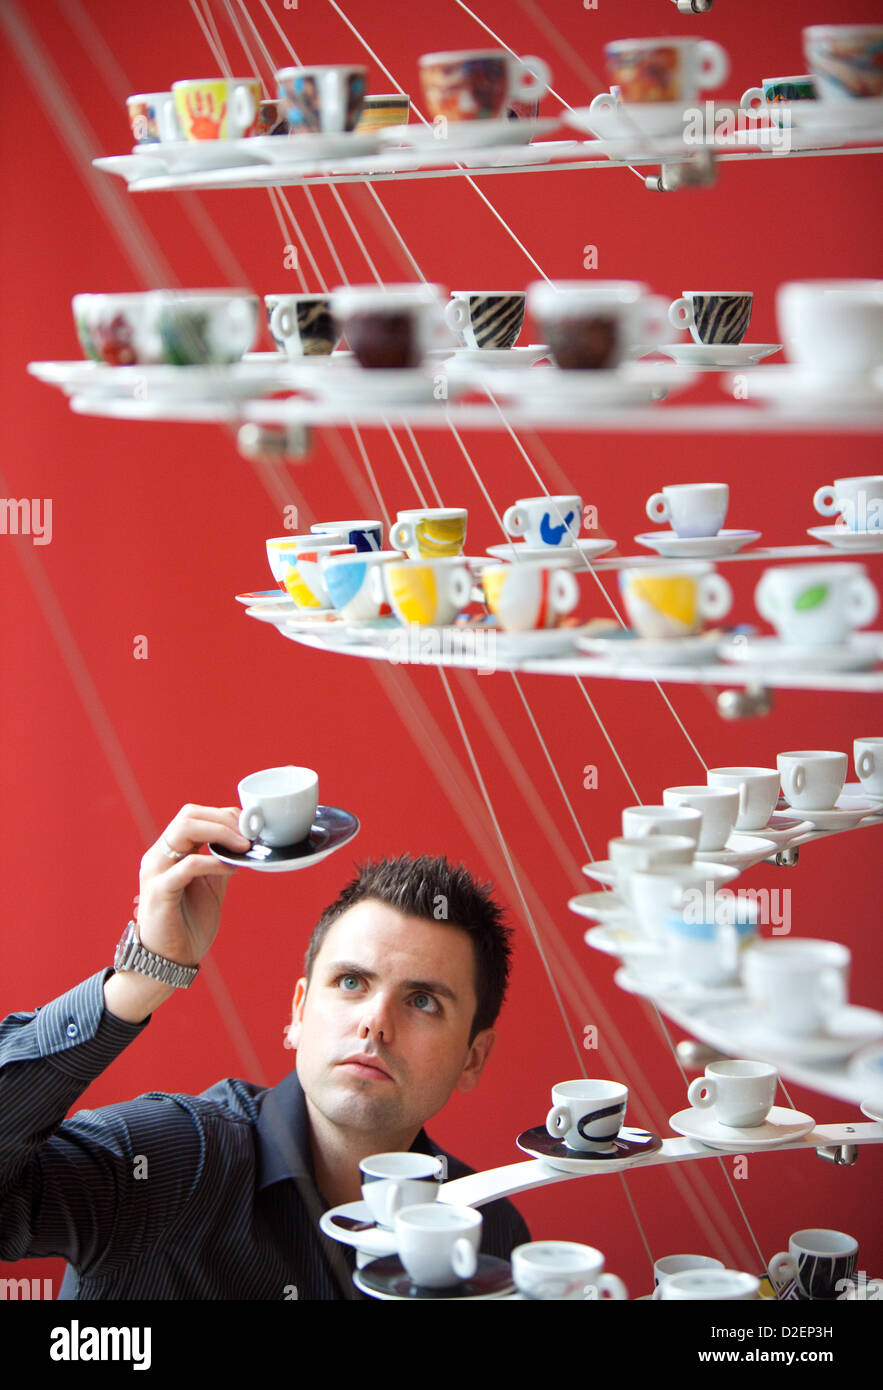 Illy art cups go on display in Manchester UK - Stock Image